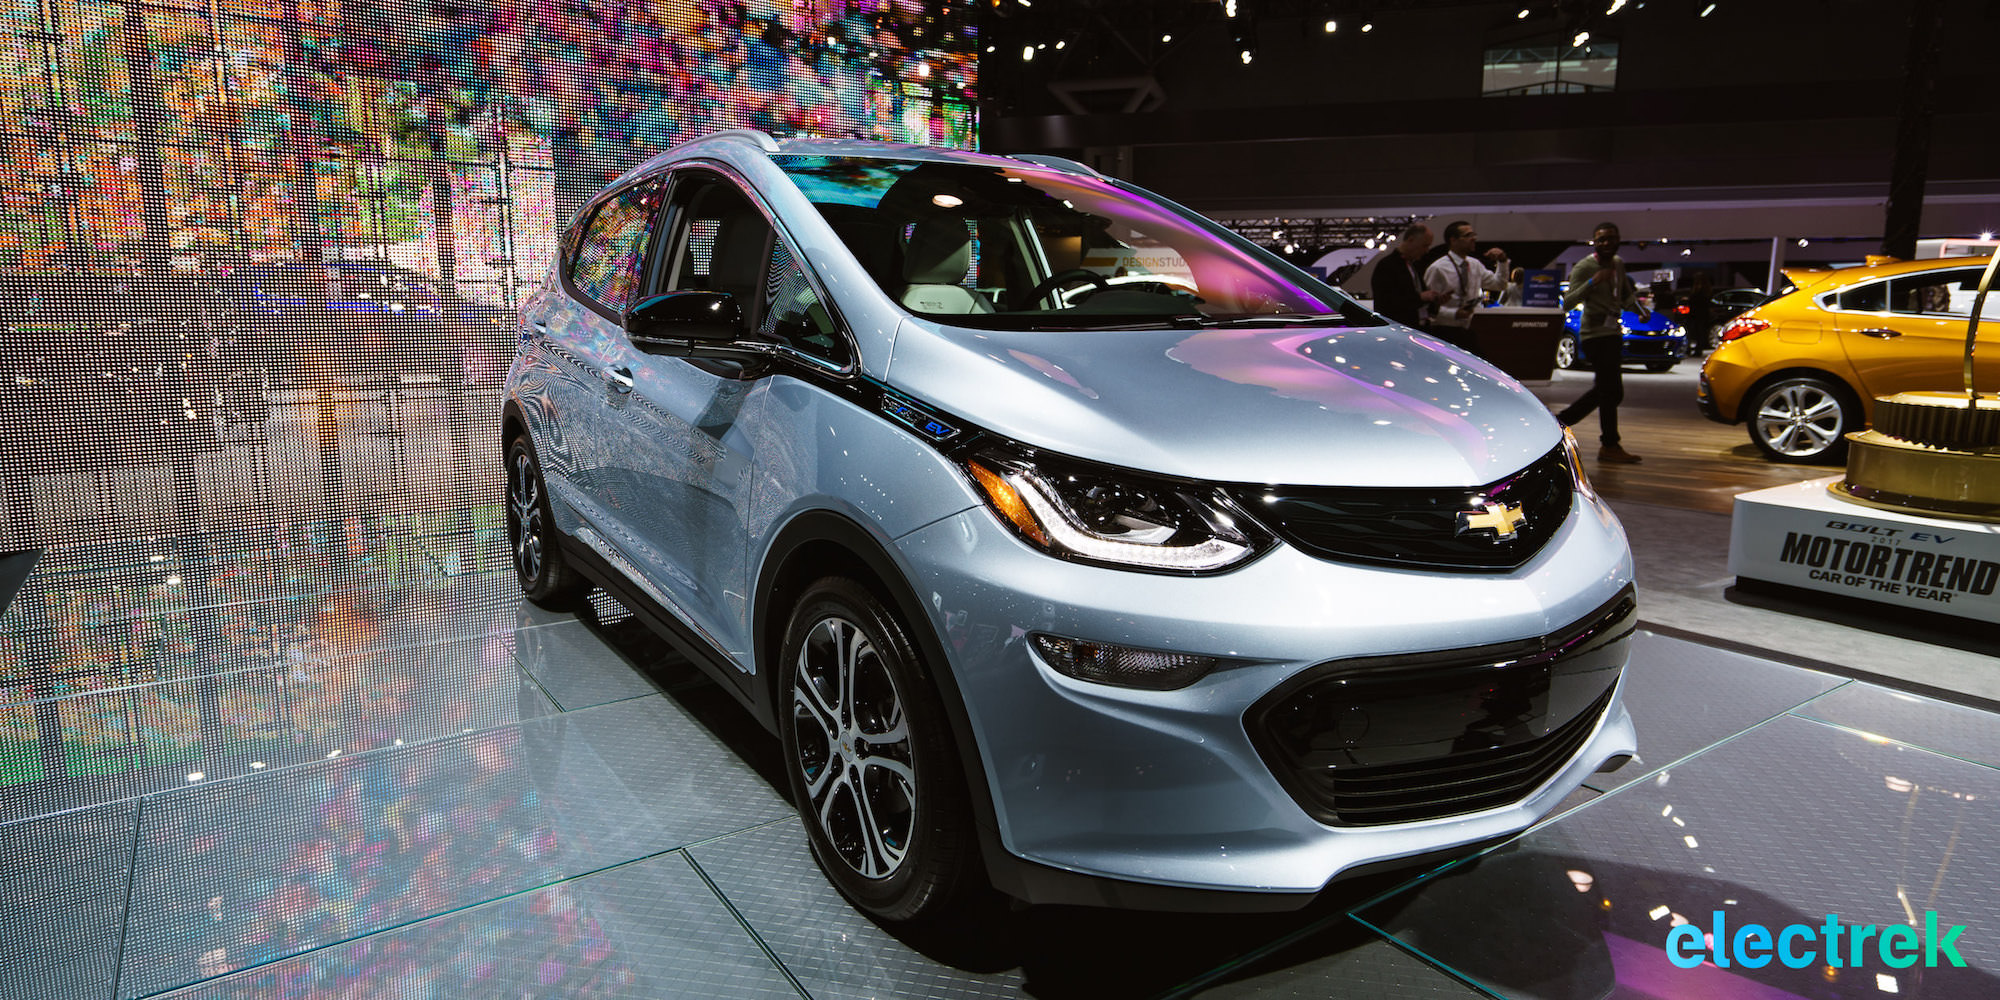 GM drops GPS navigation in the Chevy Bolt, relying on customers' smartphones instead.